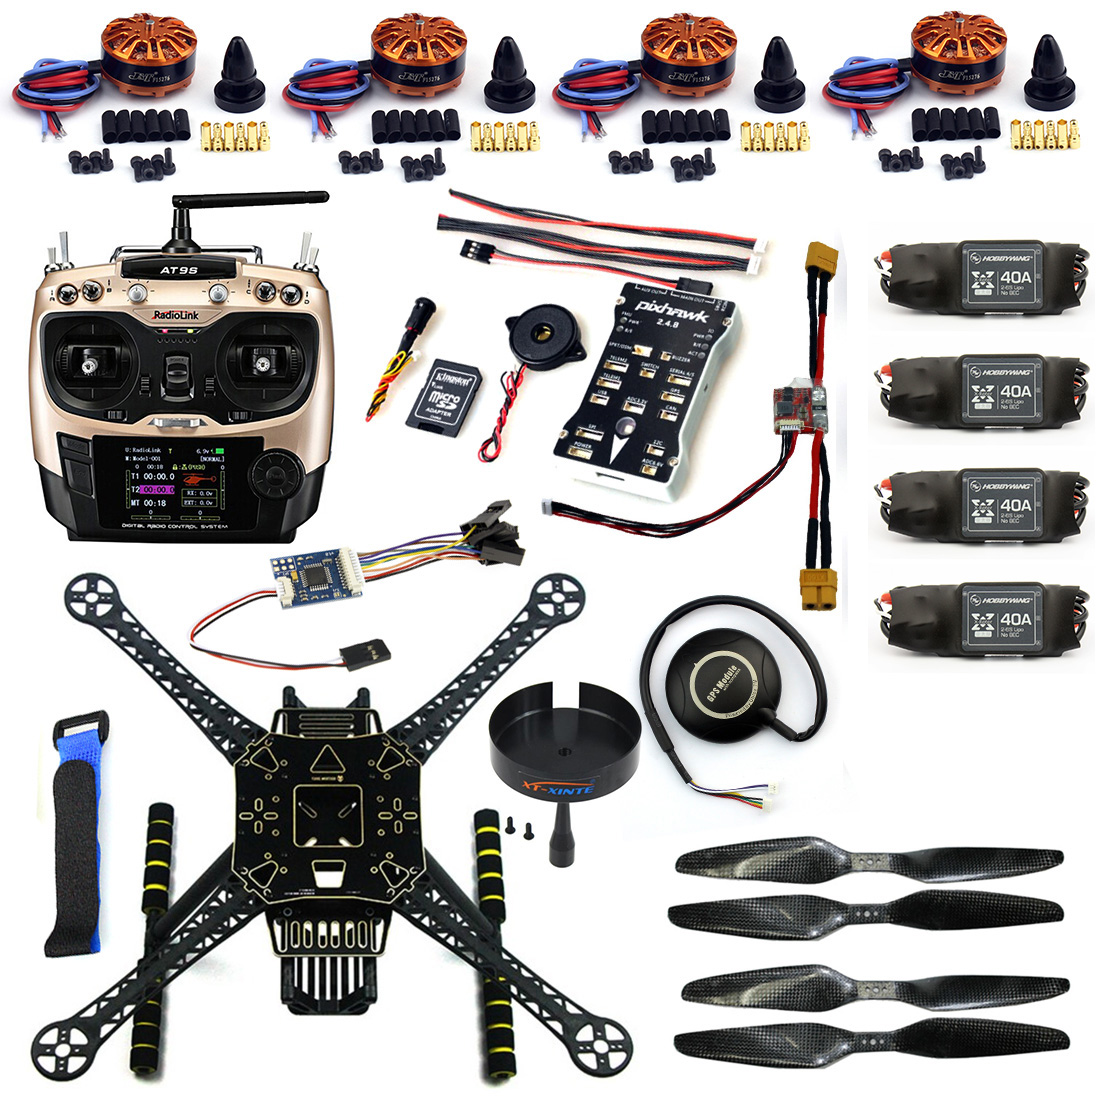 DIY FPV Drone S600 4-Axle Frame Kit Pix 2.4.8 Flight Control AT9S Transimitter GPS7M 40A ESC with 700KV Motor XT60 Plug F19457-B f15441 g apm2 8 flight control 6m gps gps folding antenna telemetry kit fpv combo 5 8g 250mw for diy fpv rc drone multicopter